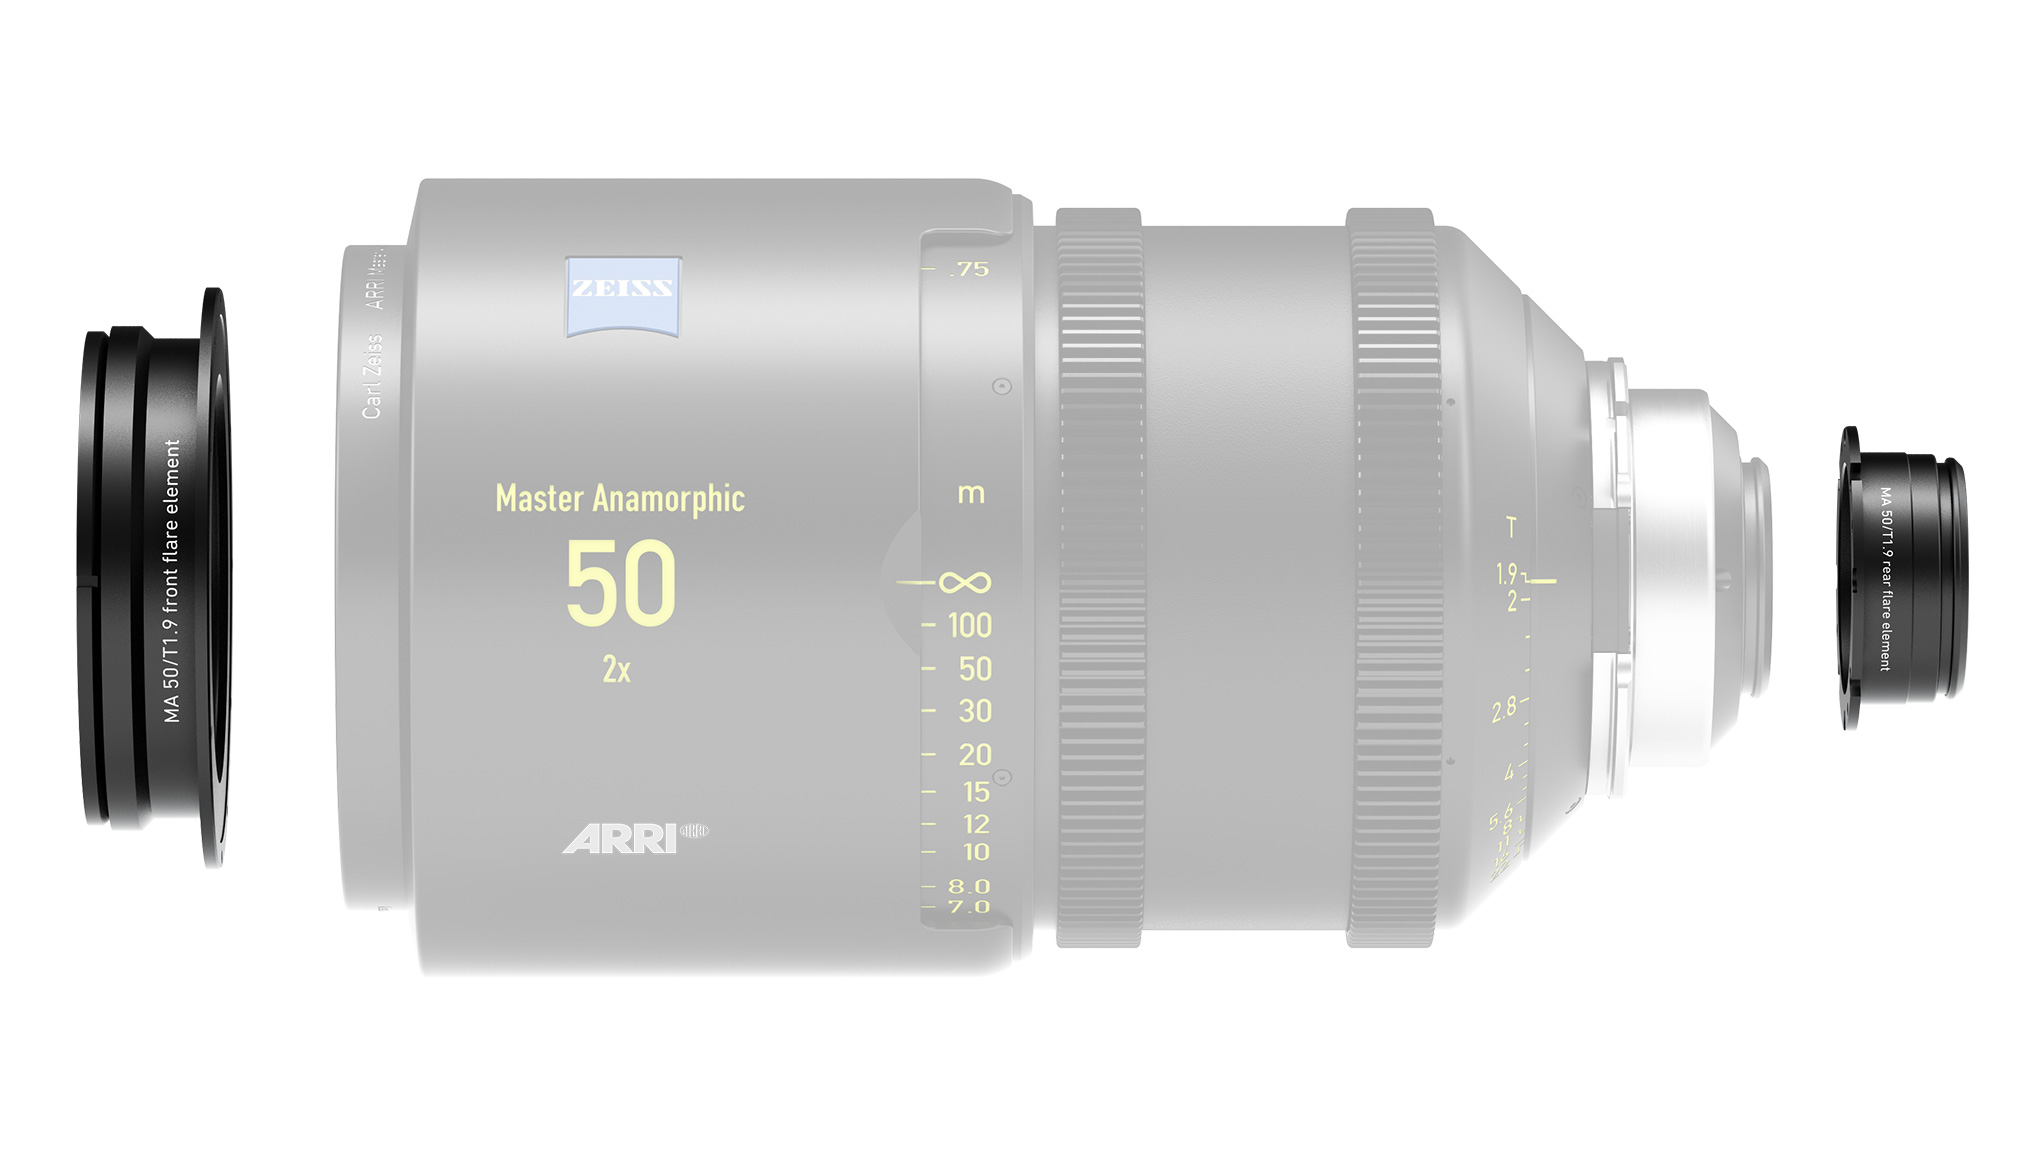 lenses-master-anamorphic-flare-sets-overview-image-data